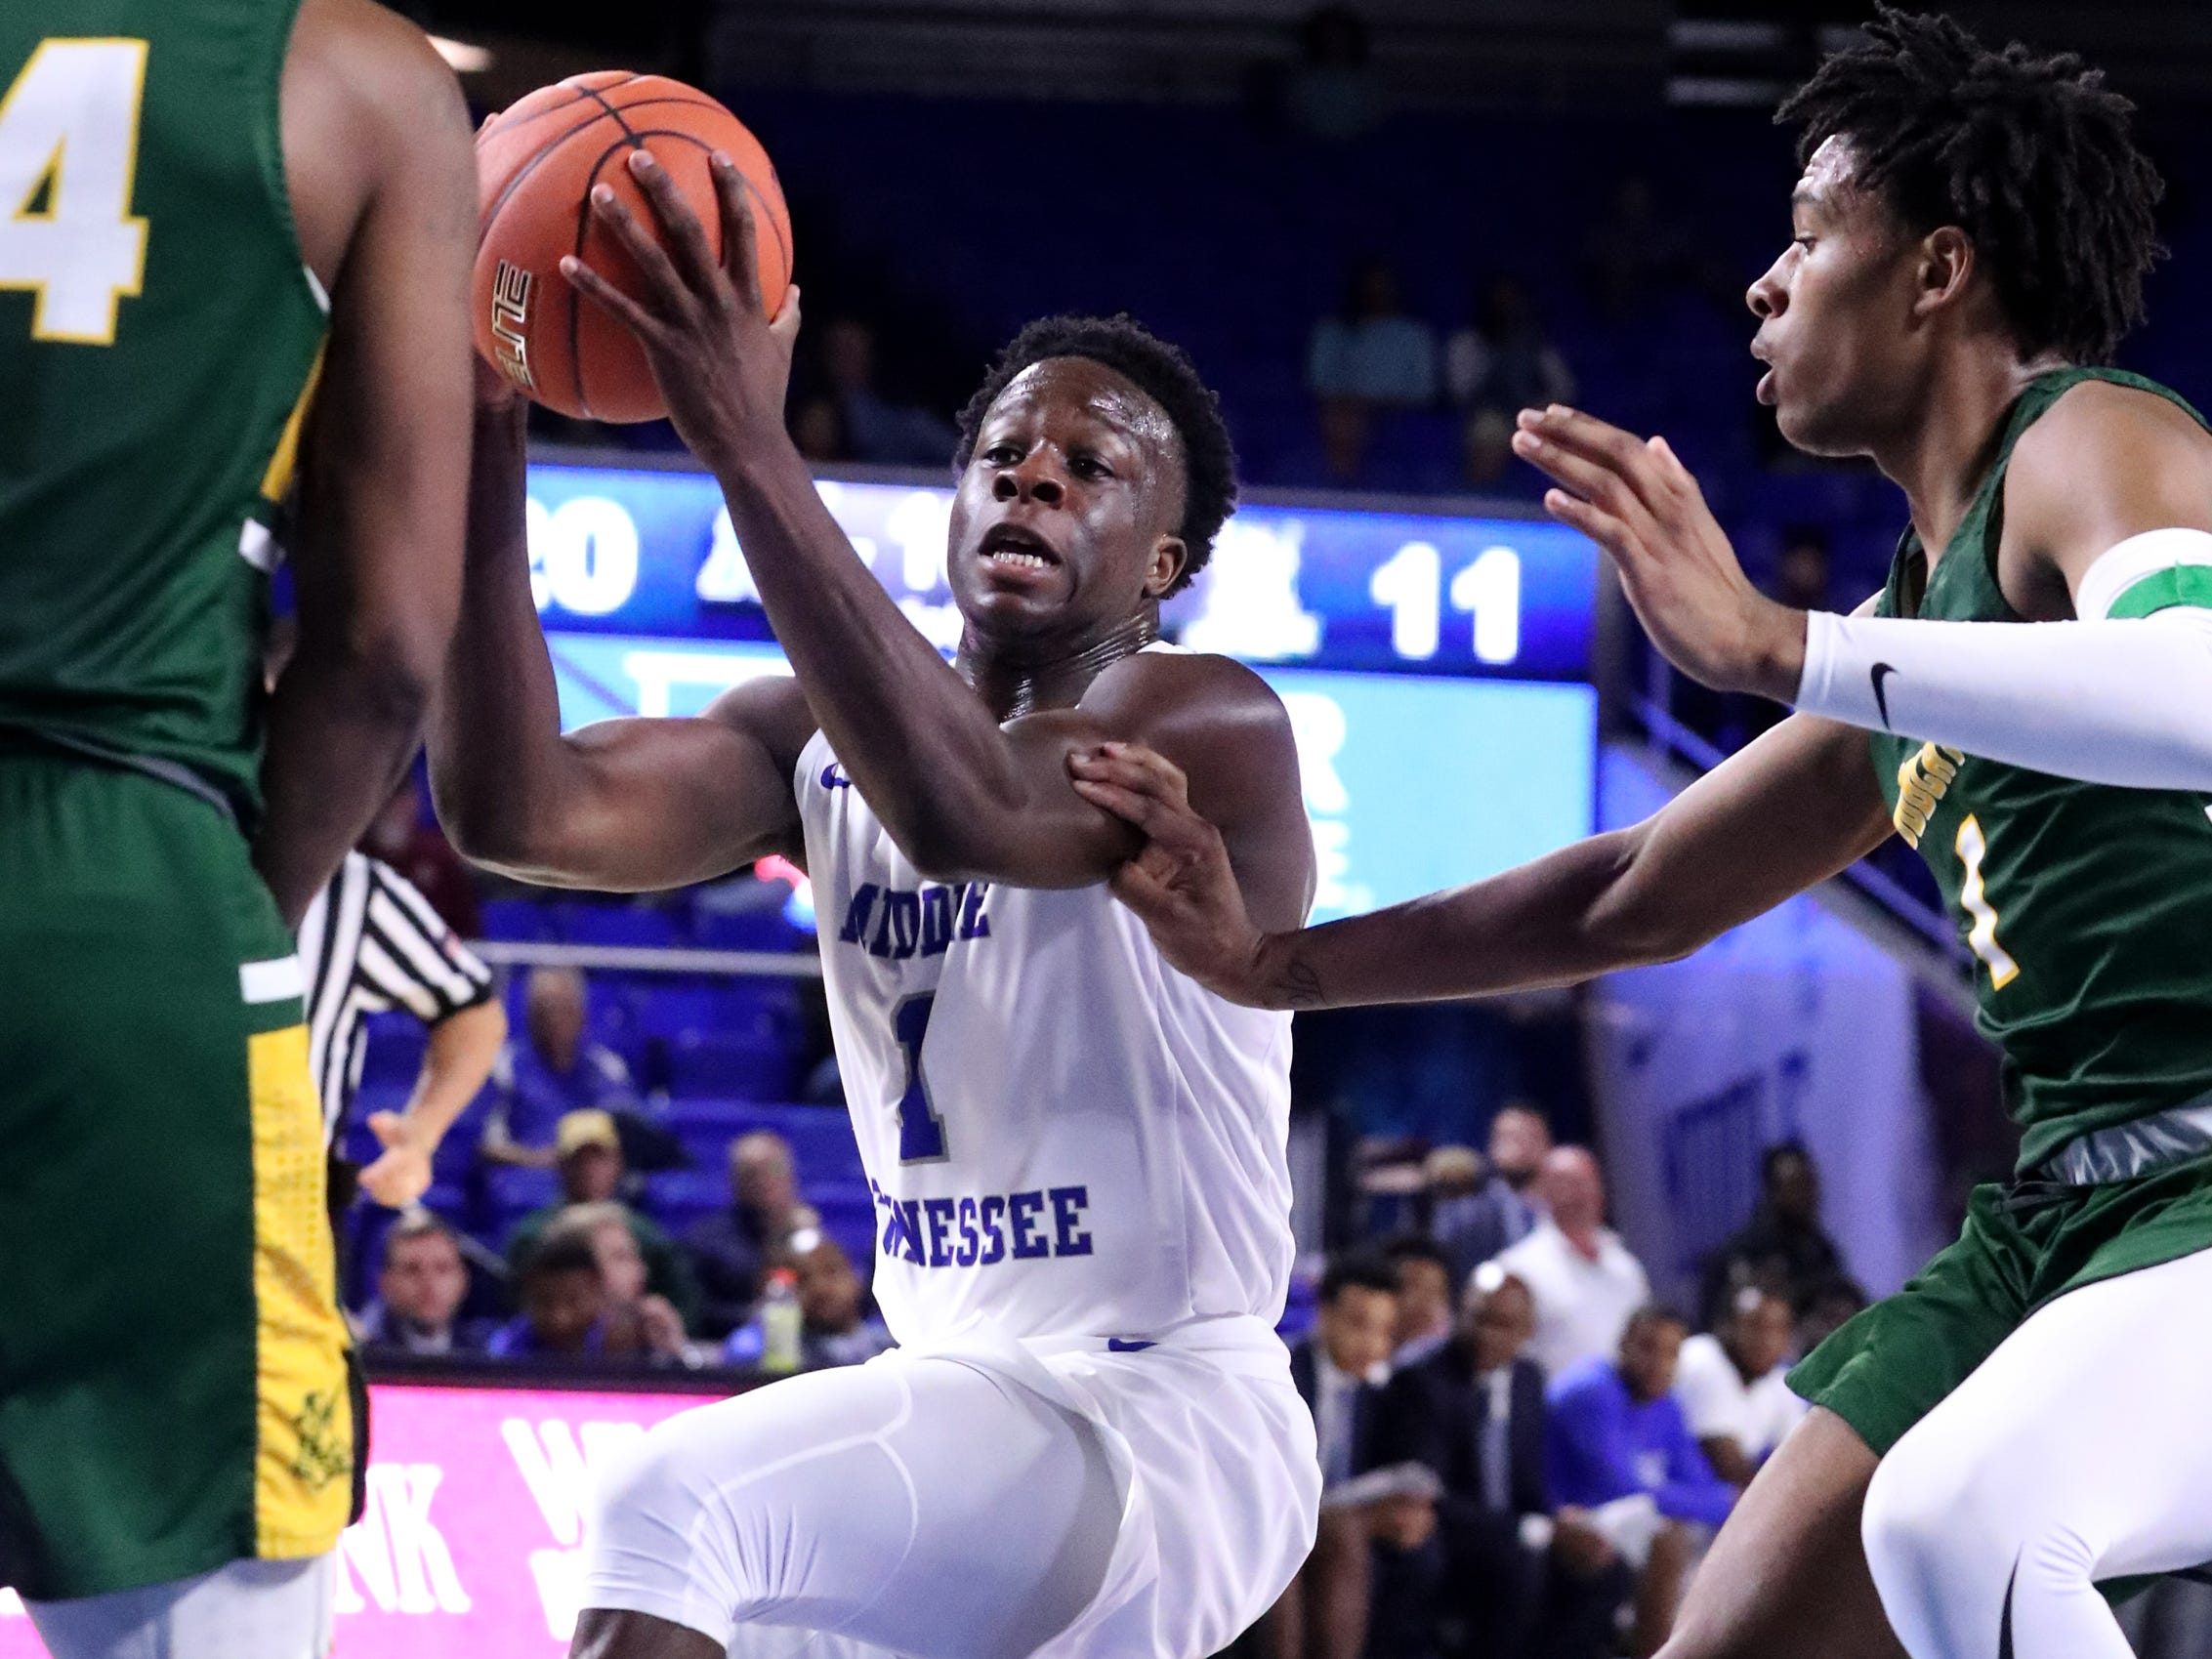 MTSU's Junior Farquhar (1) goes up for a shot as Lees-McRae's () guards him on Tuesday, Nov. 6, 2018.